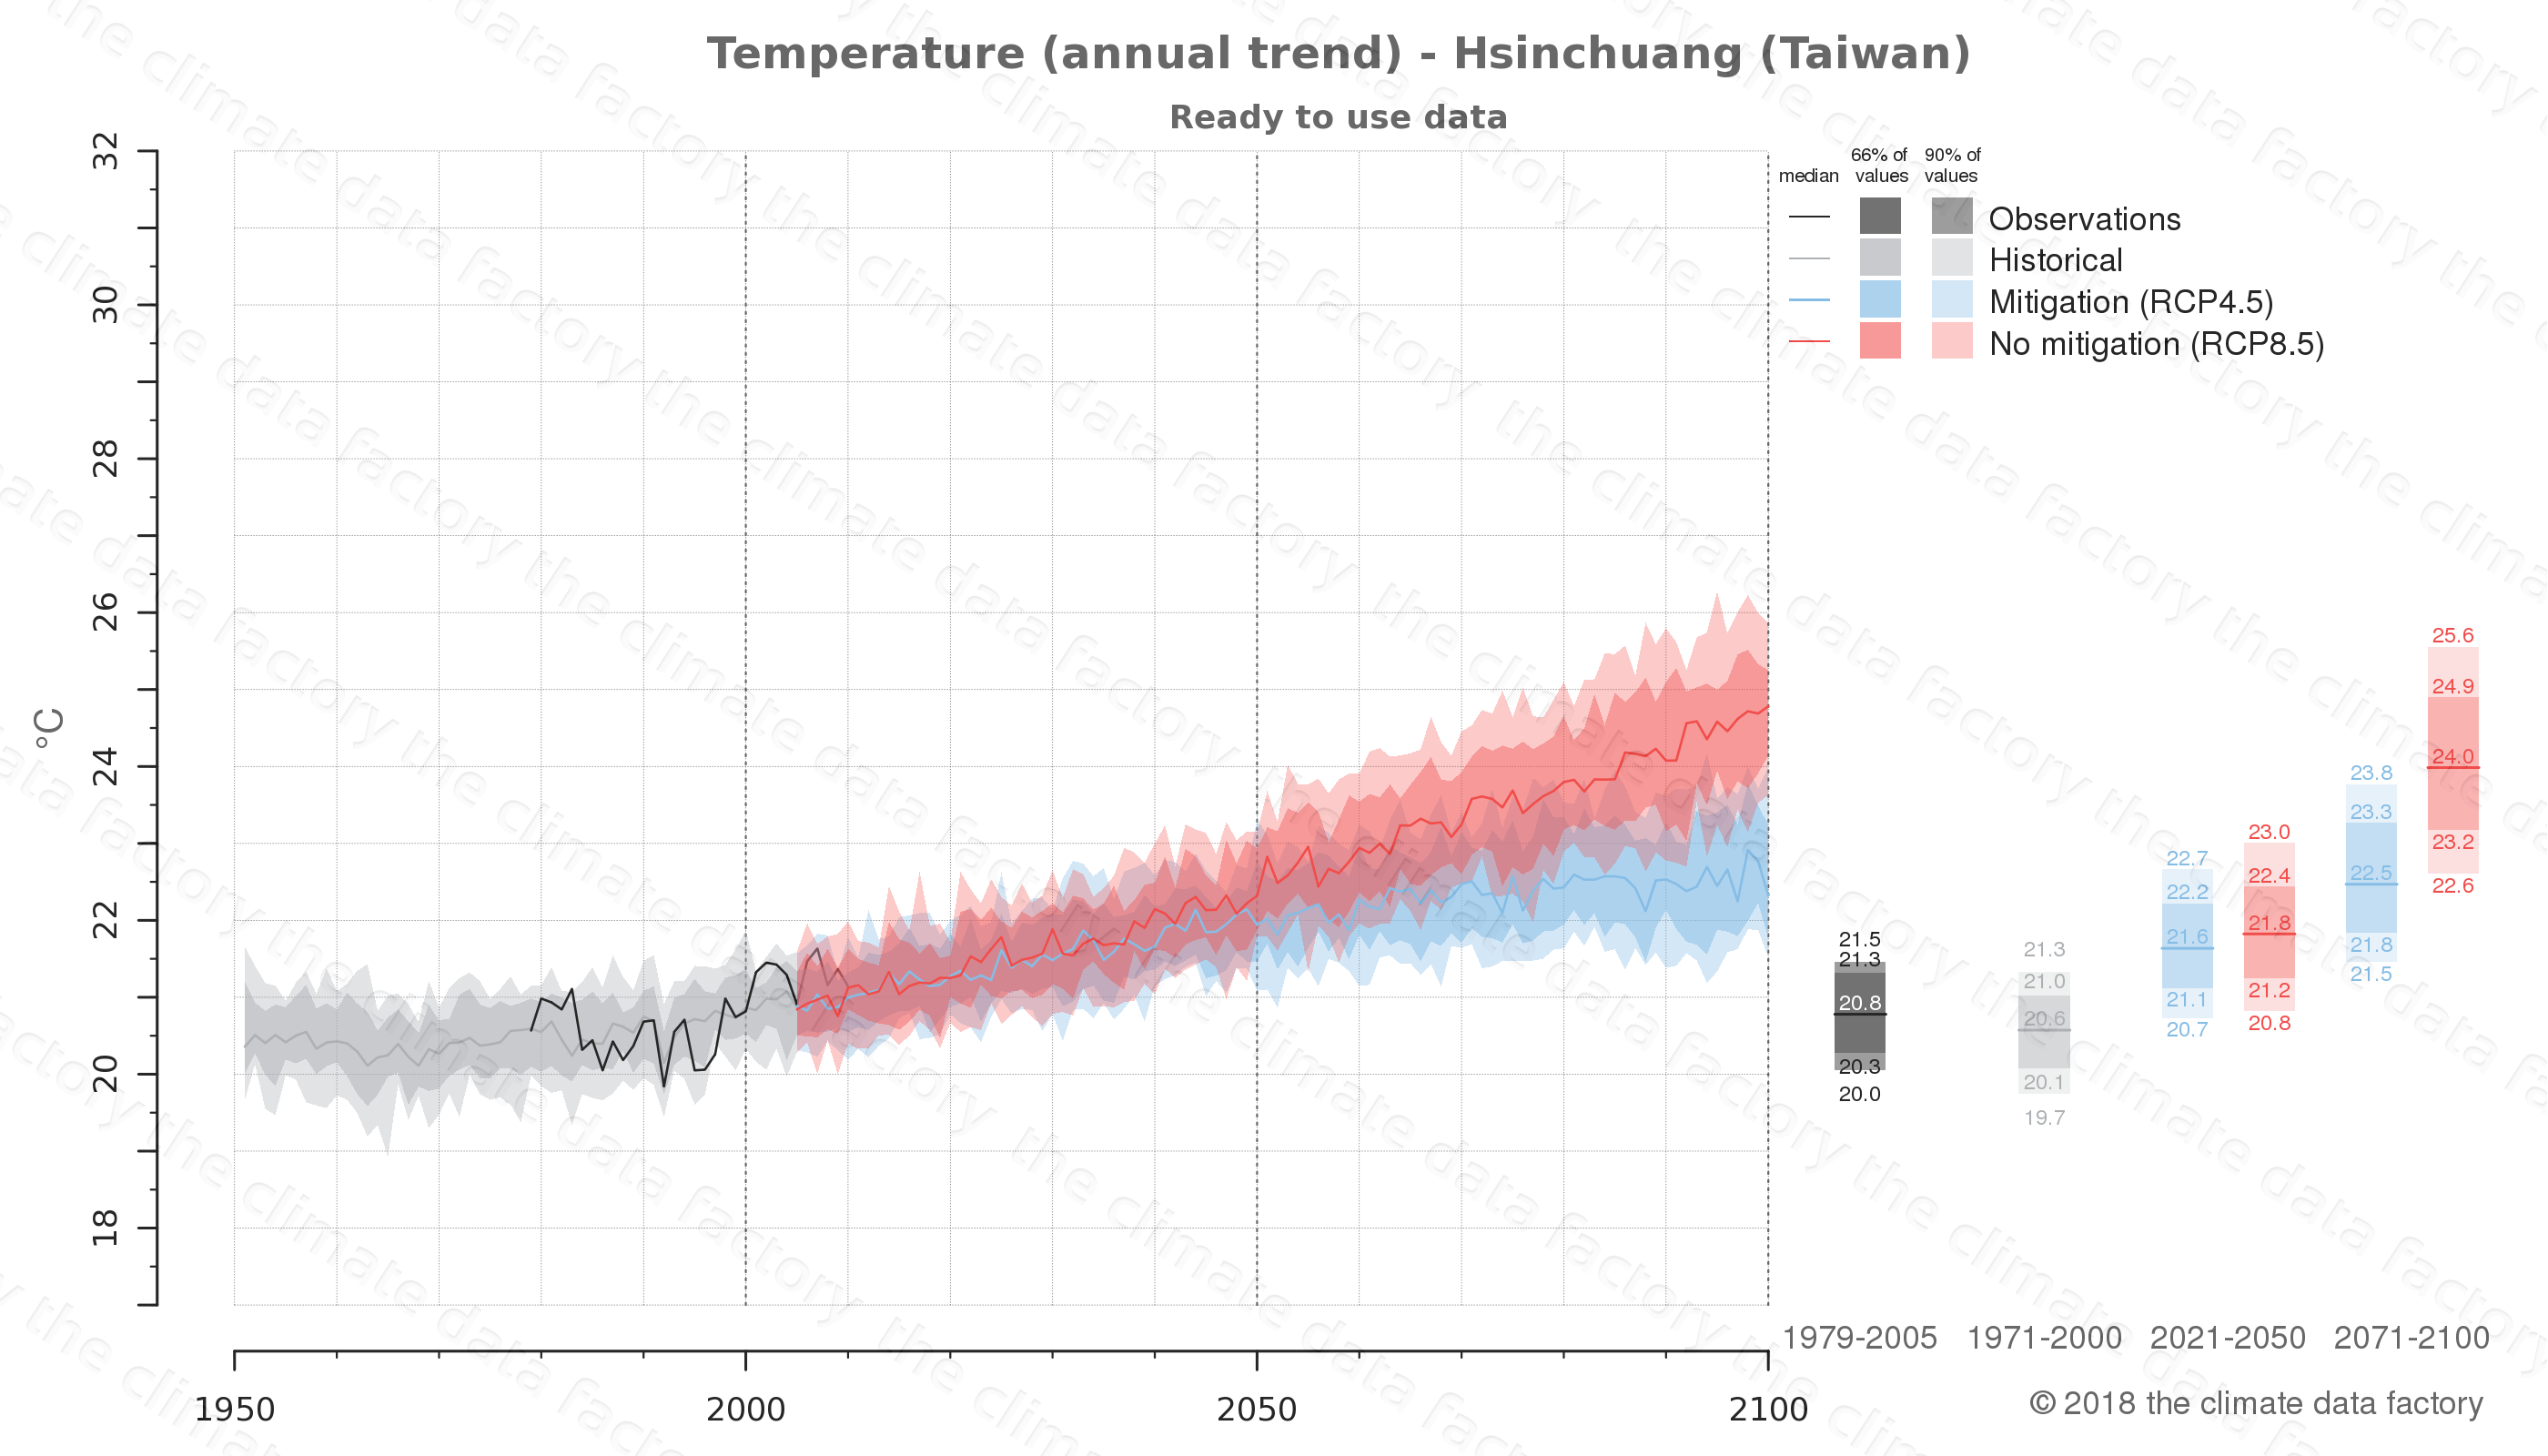 climate change data policy adaptation climate graph city data temperature hsinchuang taiwan